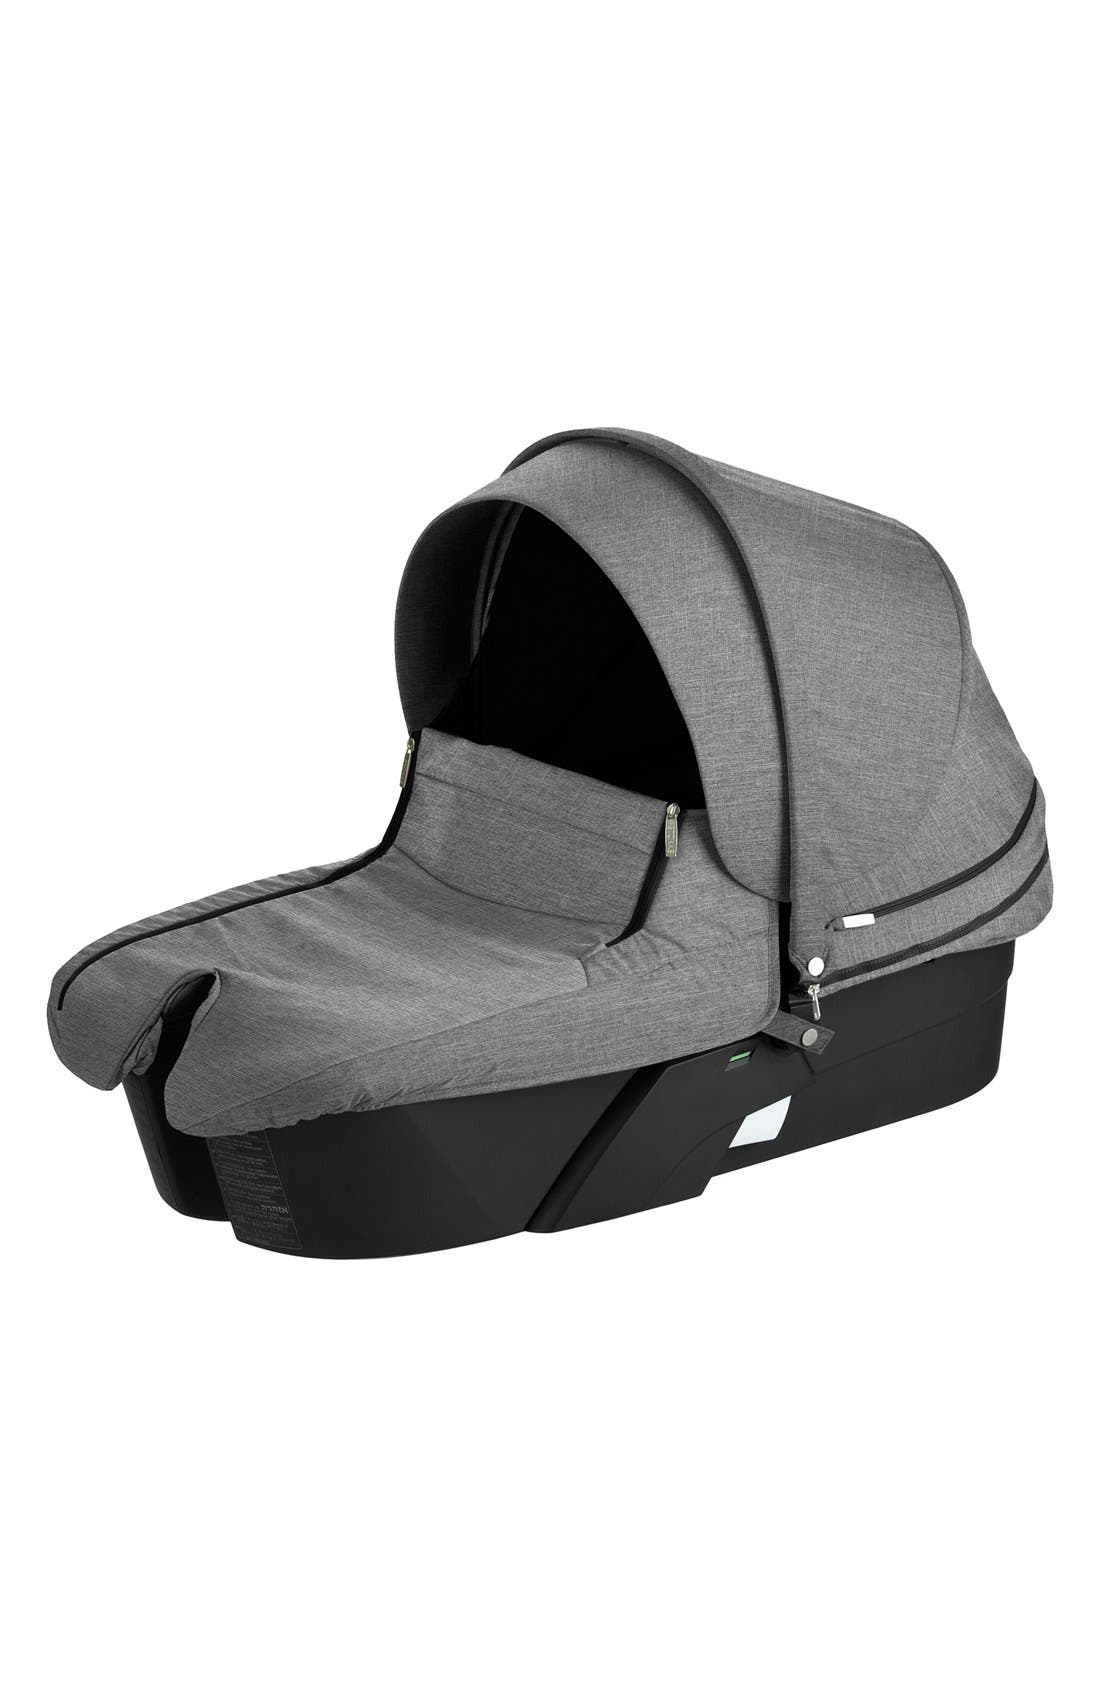 Xplory<sup>®</sup> Stroller Carry Cot,                         Main,                         color, BLACK